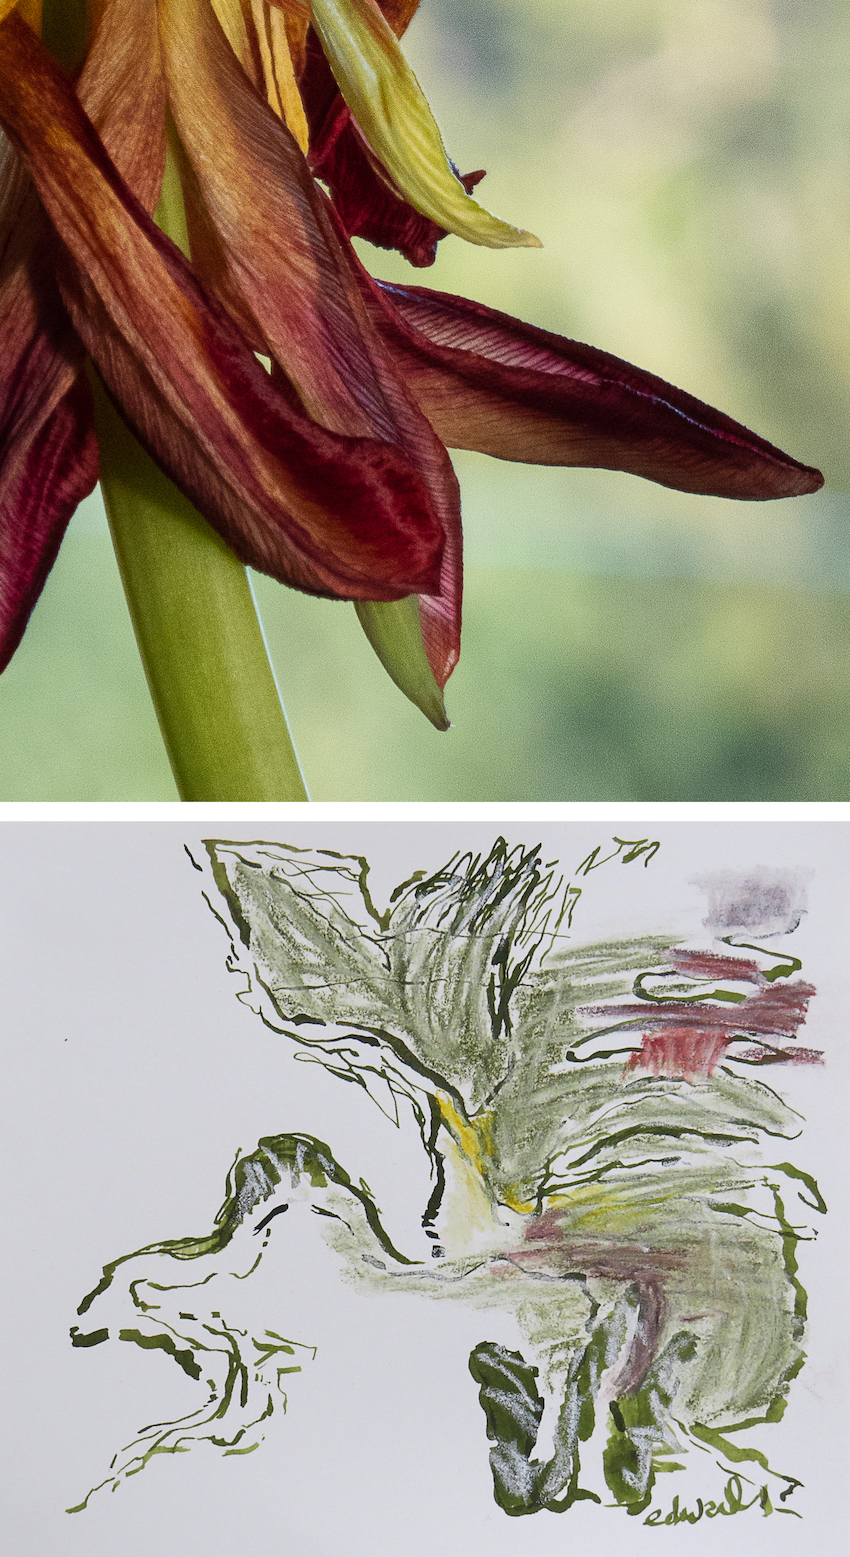 petals with drawing digital print with drawing by Canadian contemporary artist photographer barbra edwards Gulf Islands BC